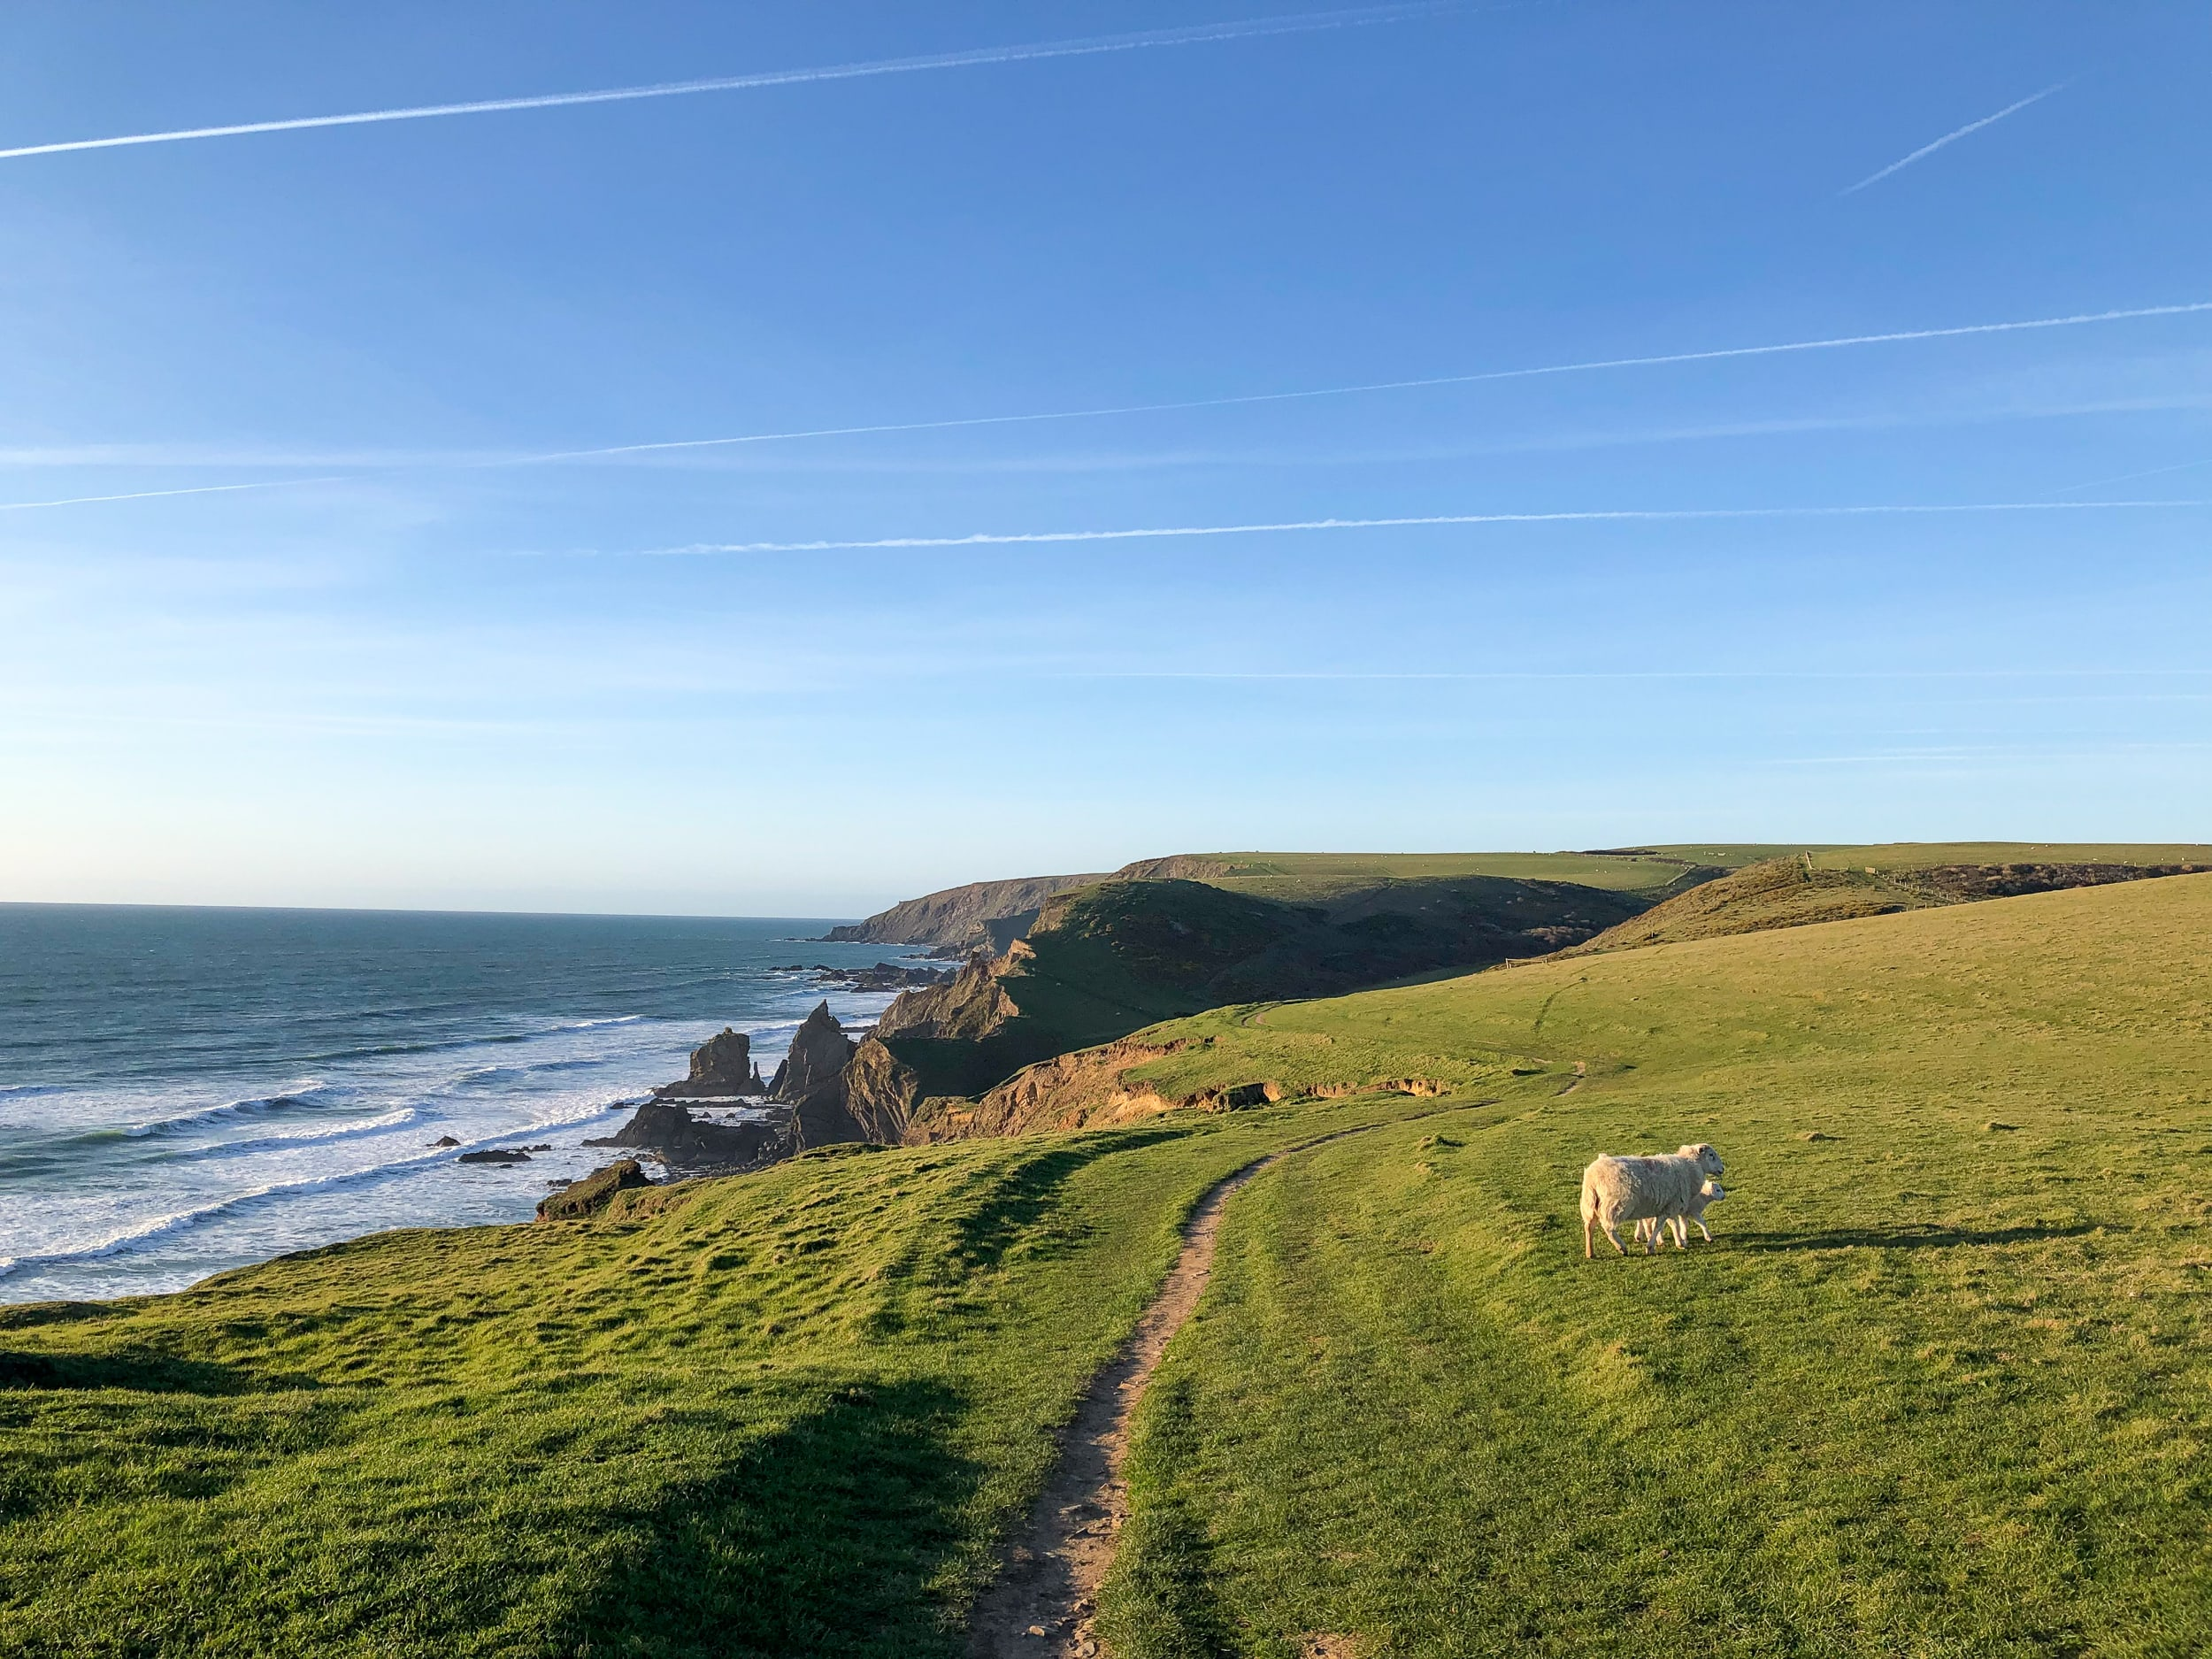 Part of the South West Coast Path, between Northcott Mouth and Sandymouth